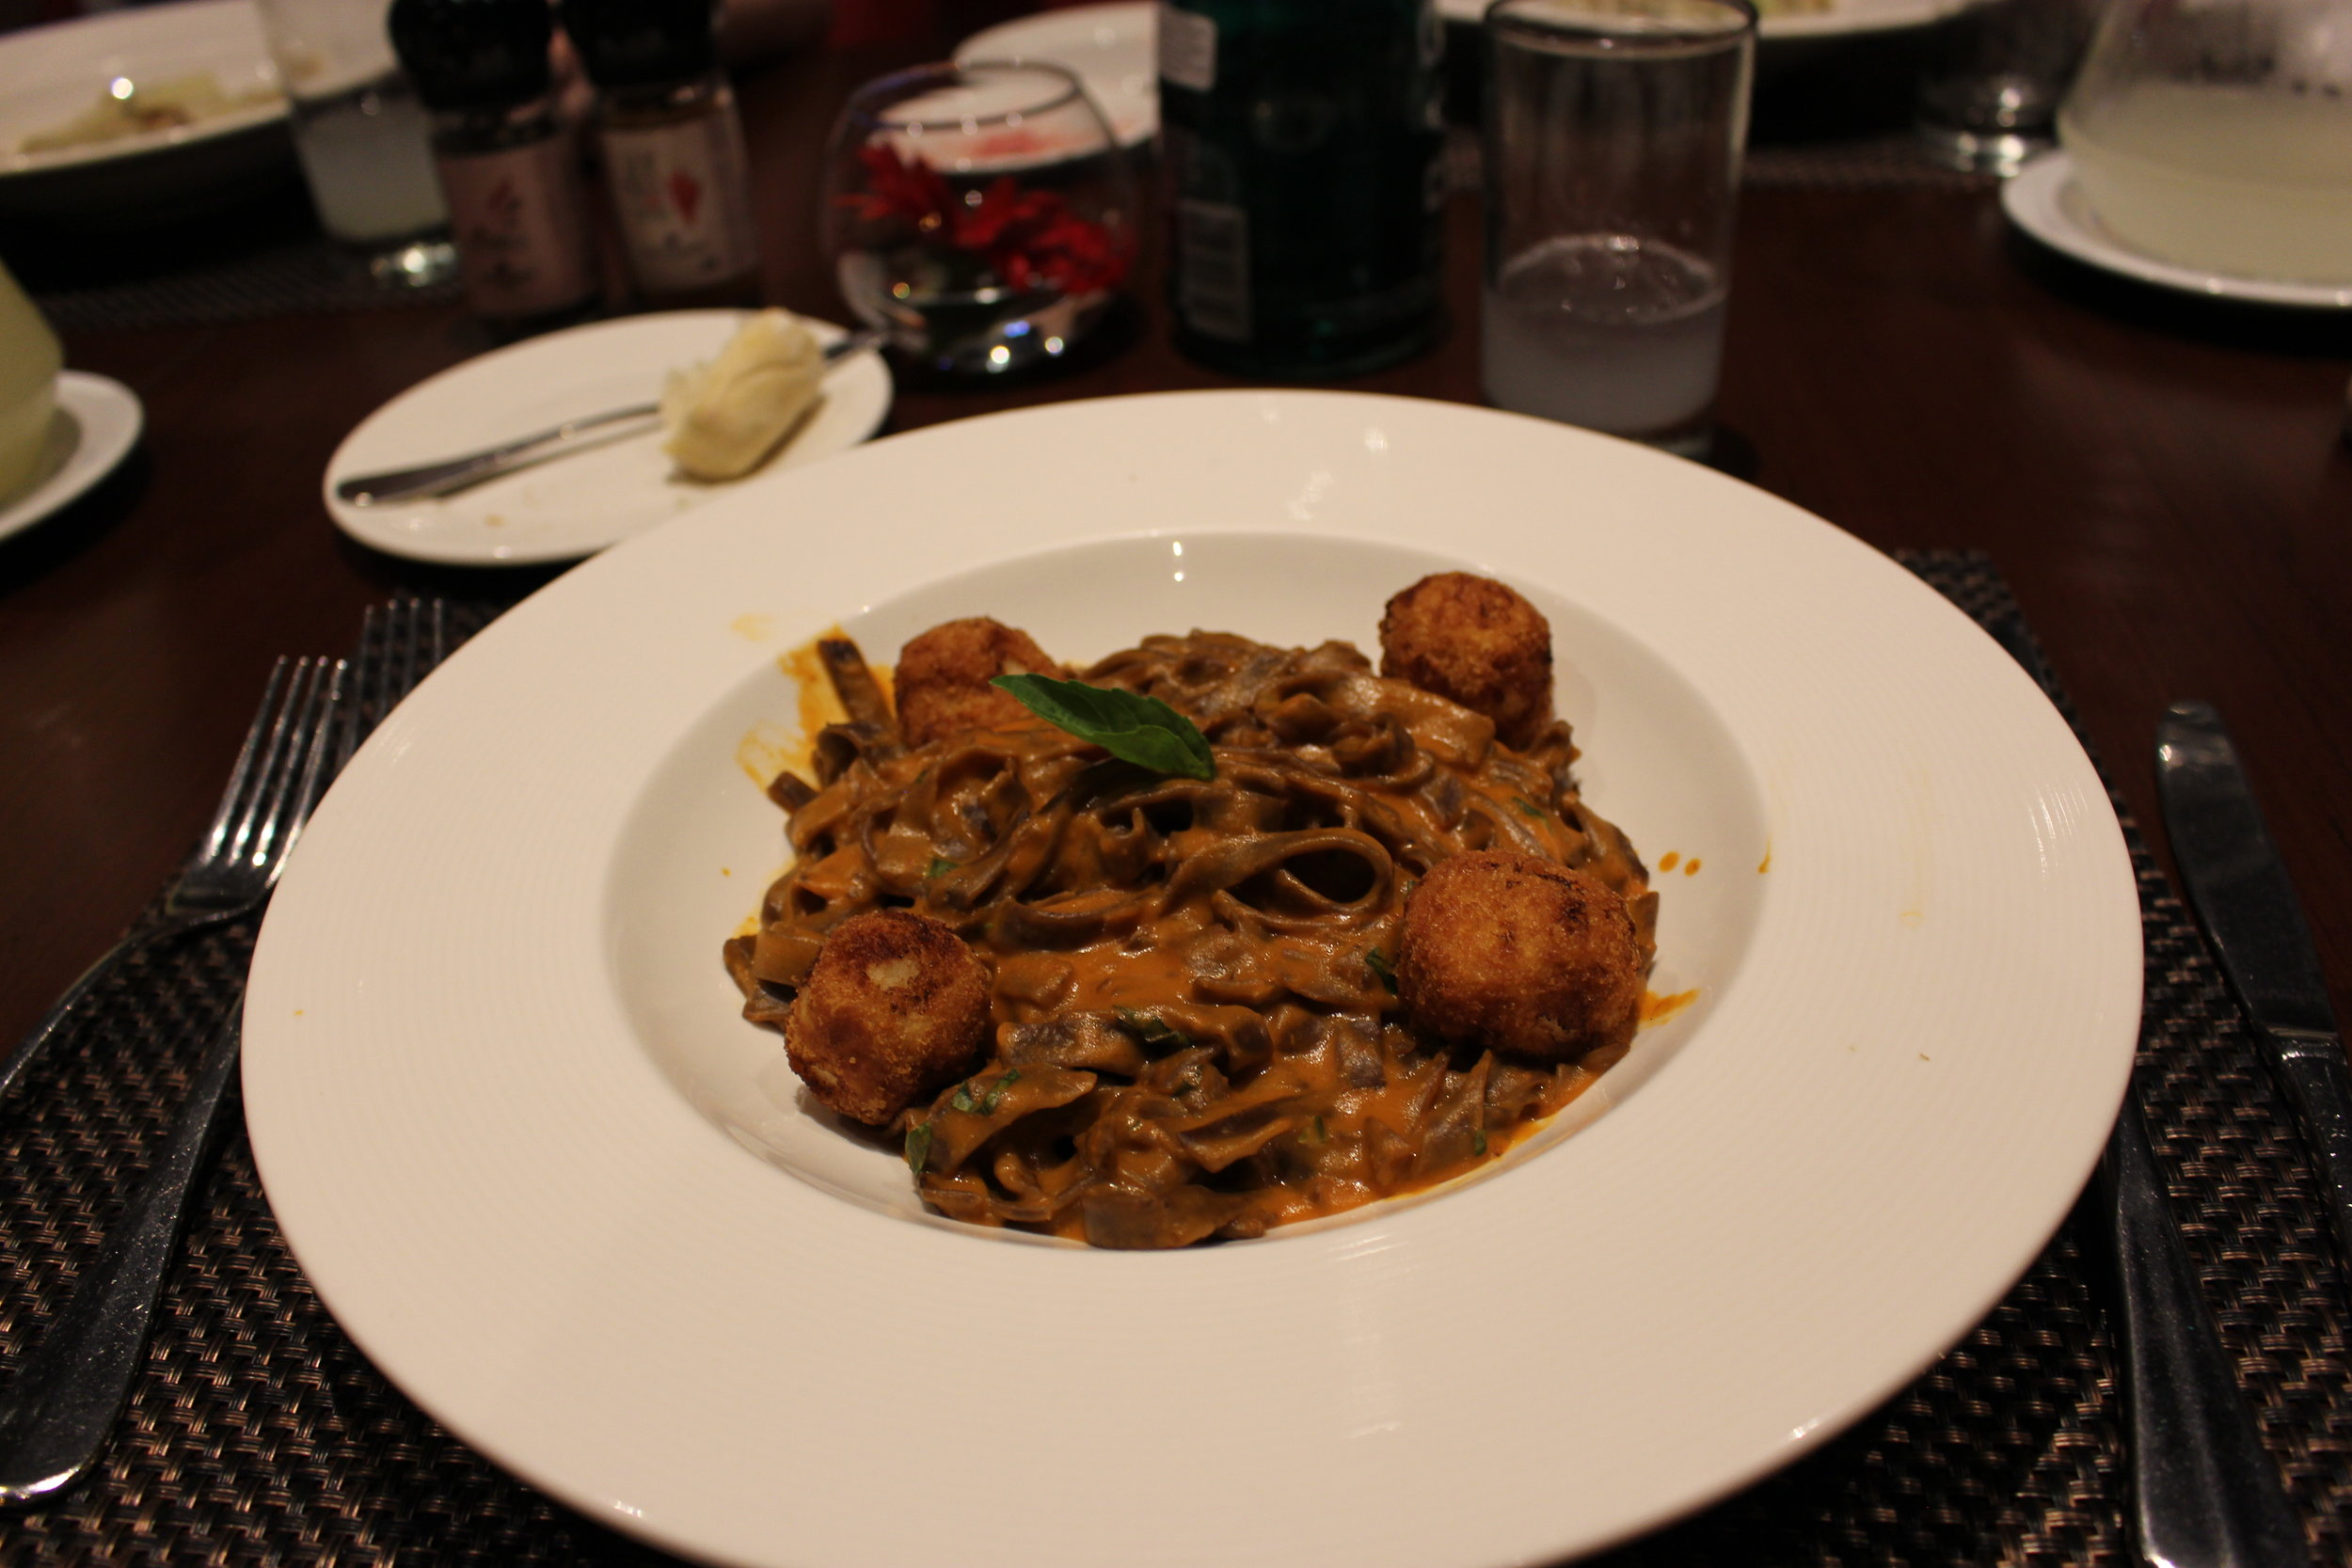 This was my meal. Not sure what I ordered exactly, but it was a savory cream pasta with quinoa chicken meatballs. Very delicious.  Restaurant: Costa del Sol Wyndham Restaurant